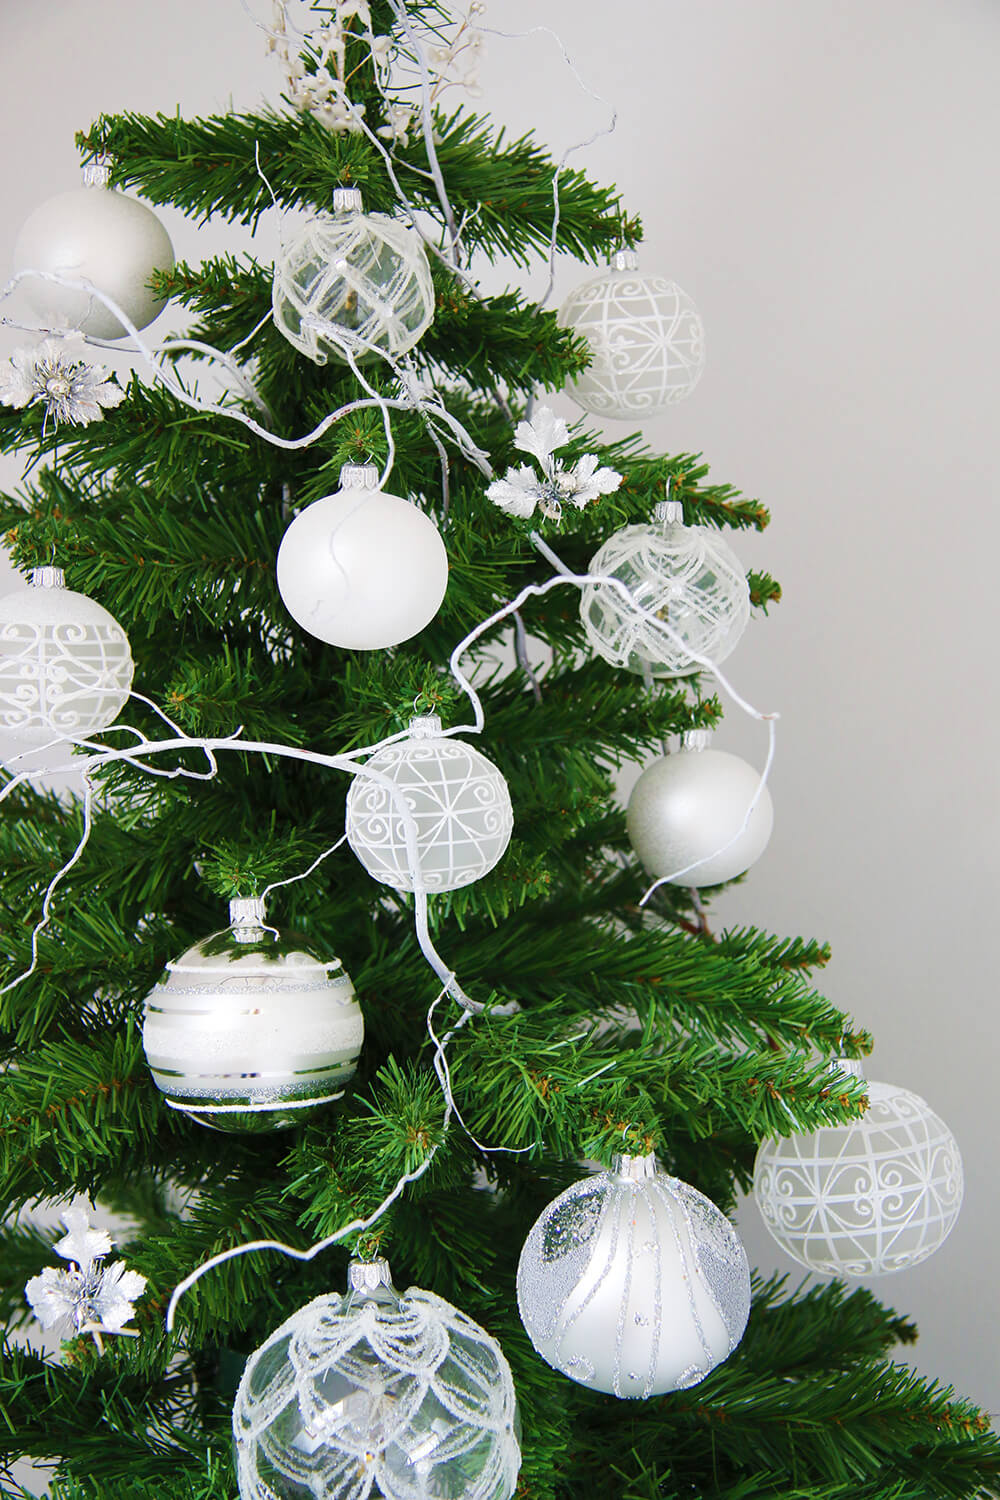 Un sapin de no l blanc et argent frenchy fancy - Decoration de noel sapin ...